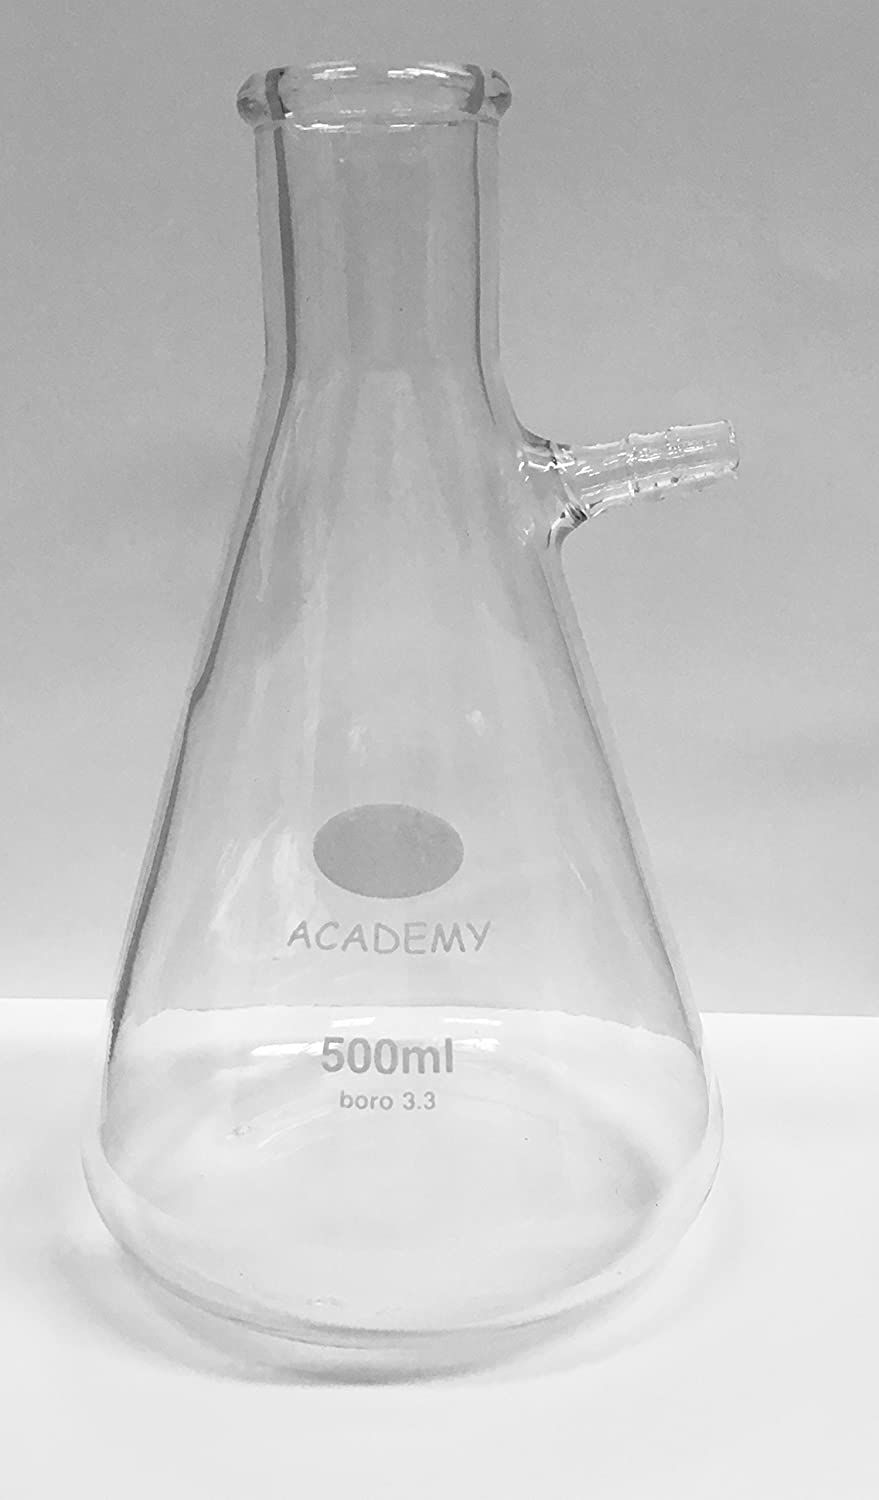 FILTER FLASK ERLENMEYER CONICAL SHAPE 500ML ACADEMY/KING SCIENTIFIC